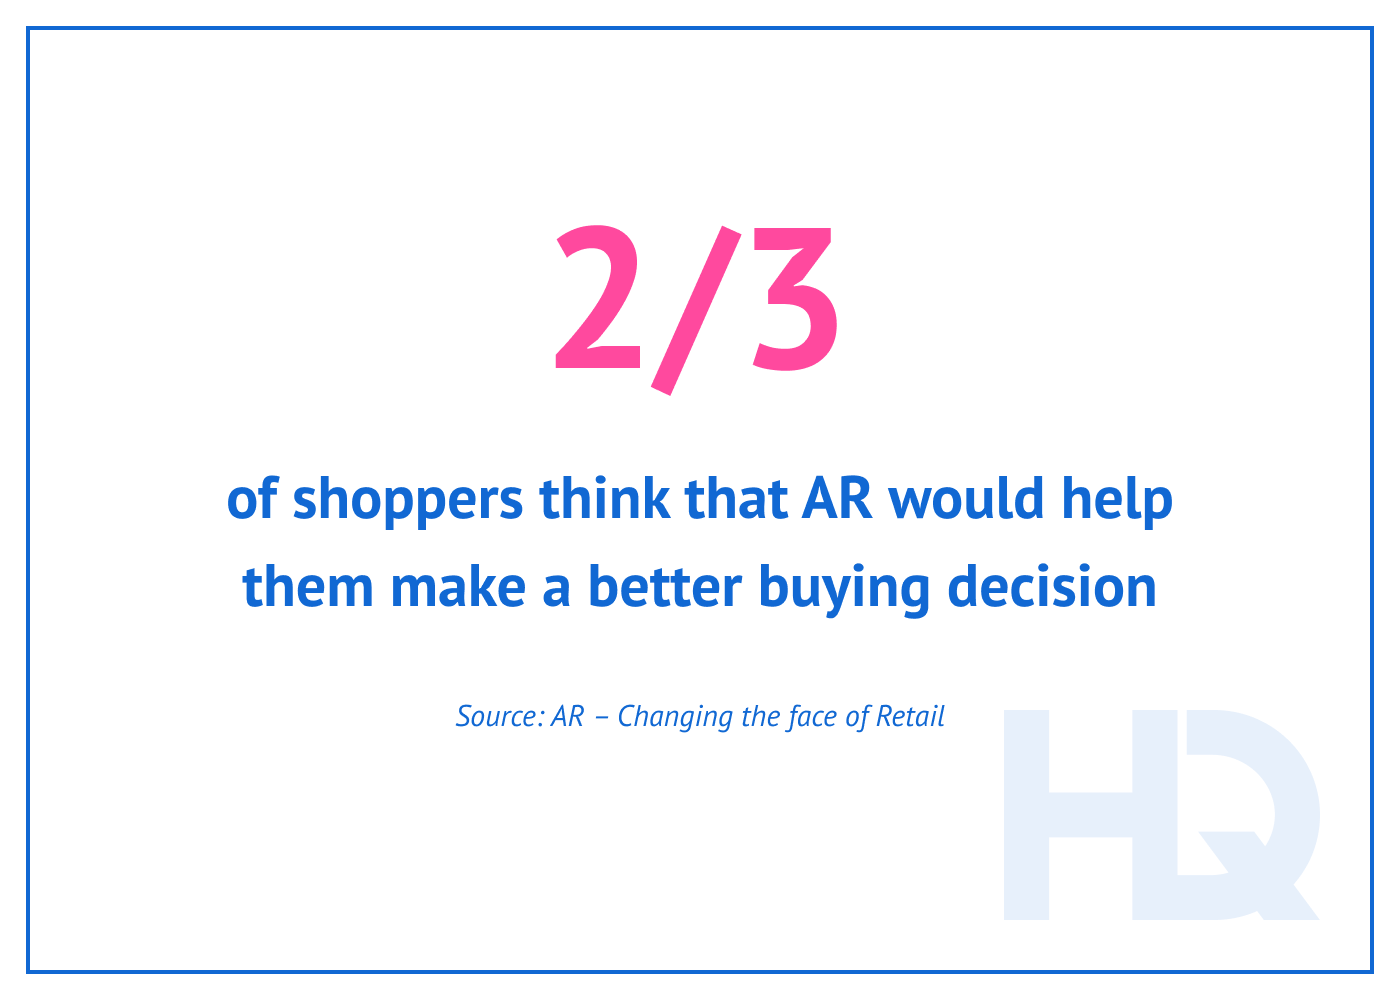 Two thirds of shoppers think that AR would help them make a better buying decision.